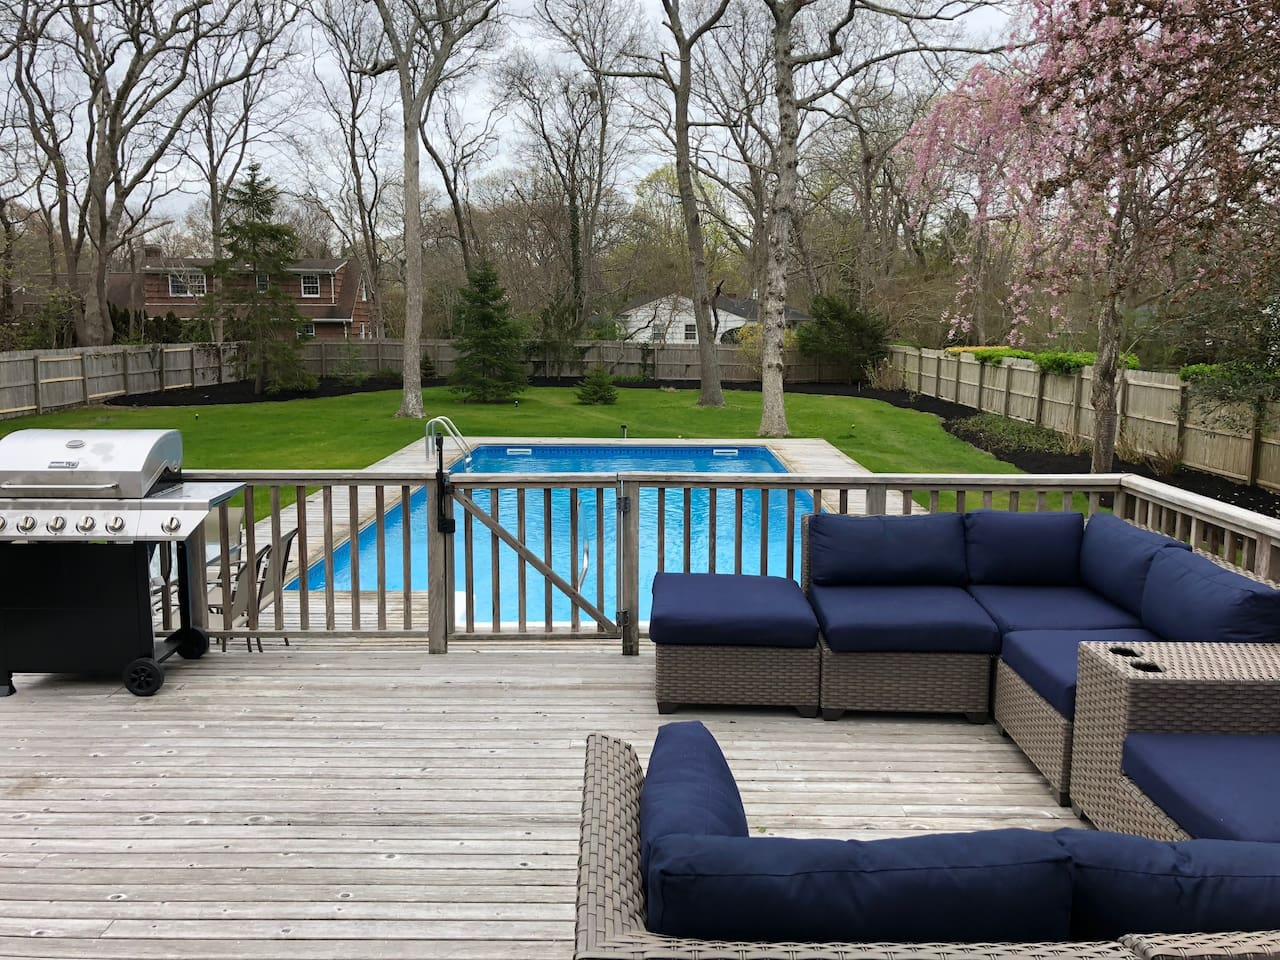 Gas BBQ, outdoor sectional seating, pool lounges and dining table with umbrella.  Newly landscaped yard with outdoor lighting for evening enjoyment and lighted extra-large pool for night swimming